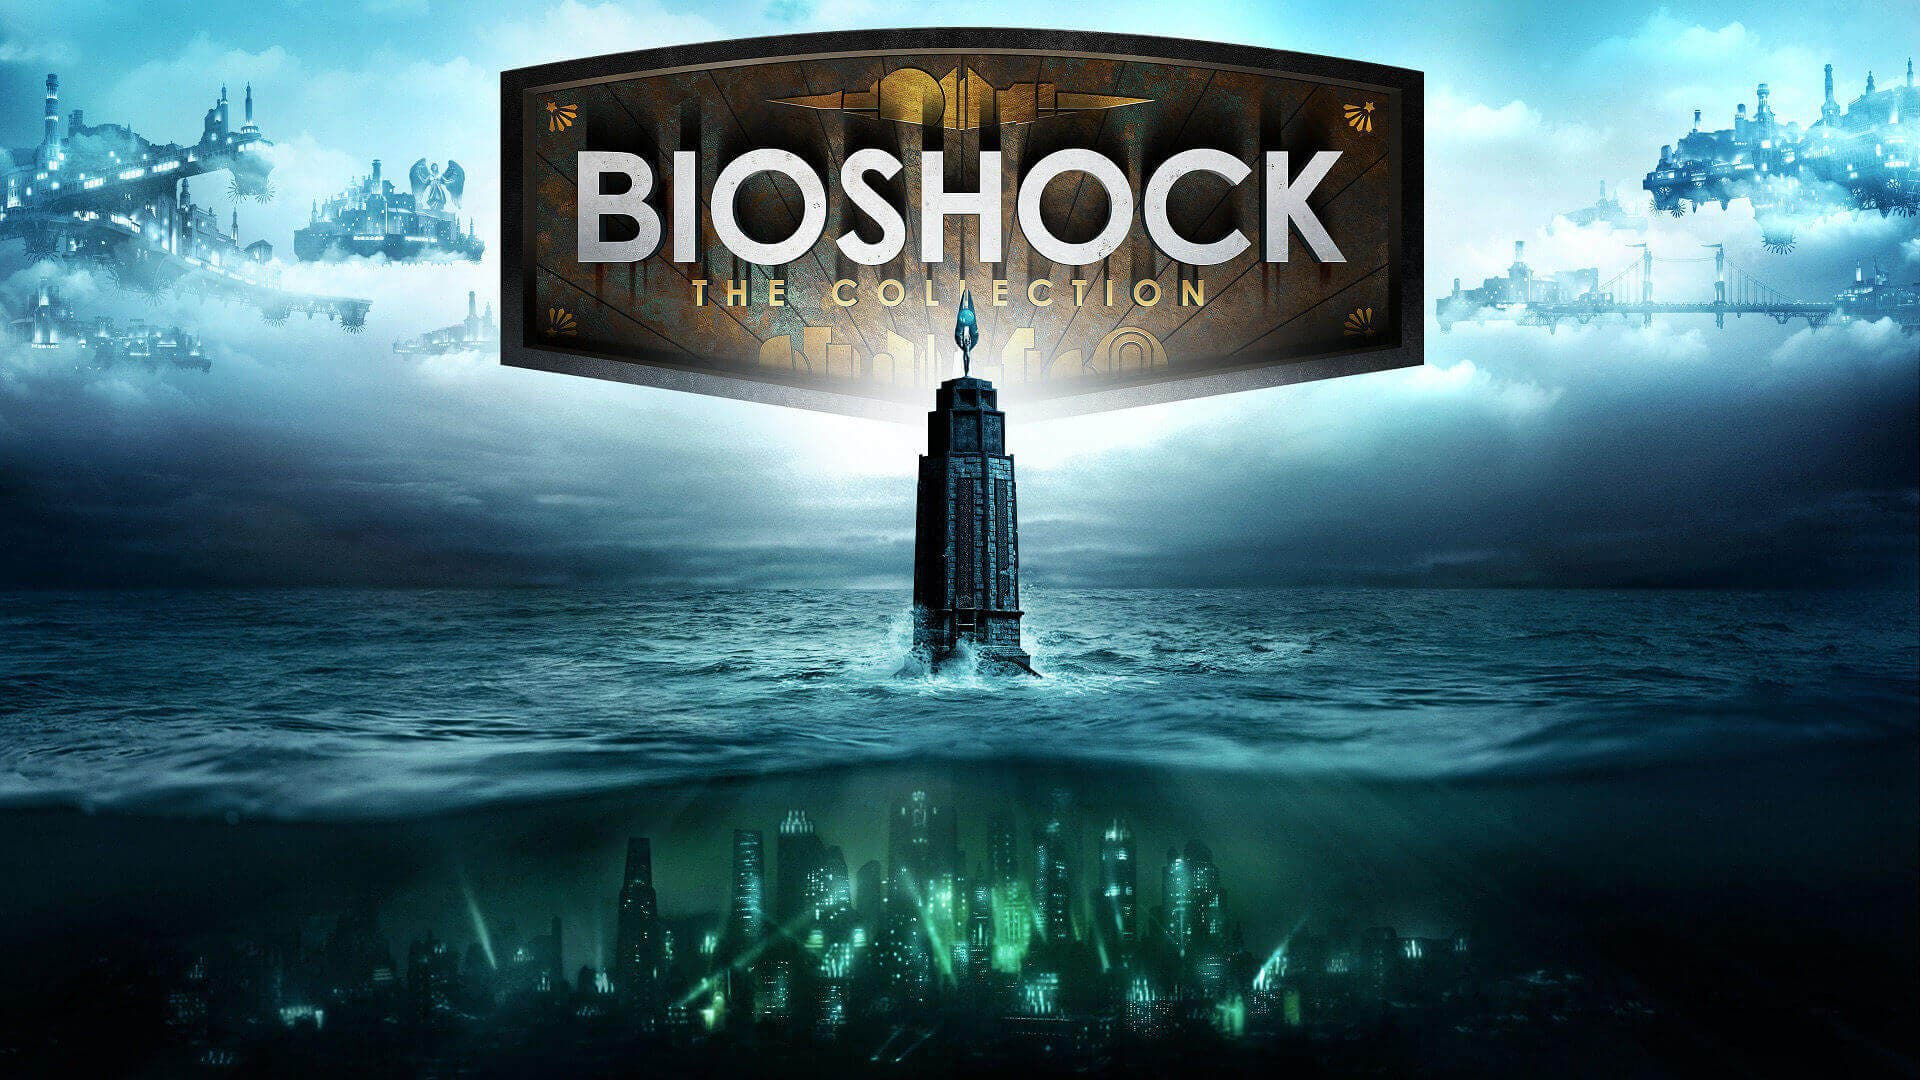 A Digital Foundry le decepciona el parche de Bioshock The Collection para Xbox One X 2